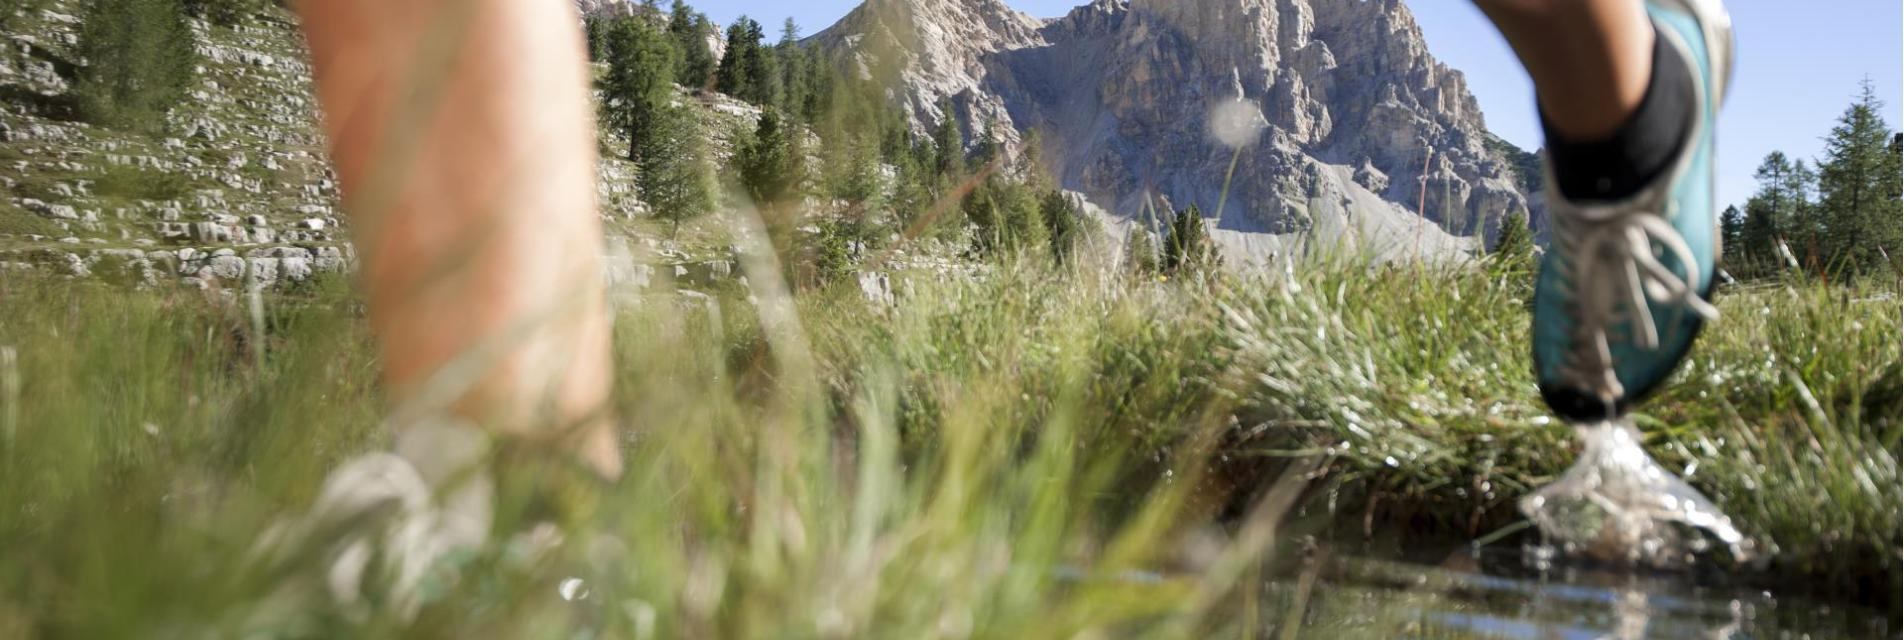 07-olaga-sommer-hiking-c-tvb-kronplatz-photo-alex-filz